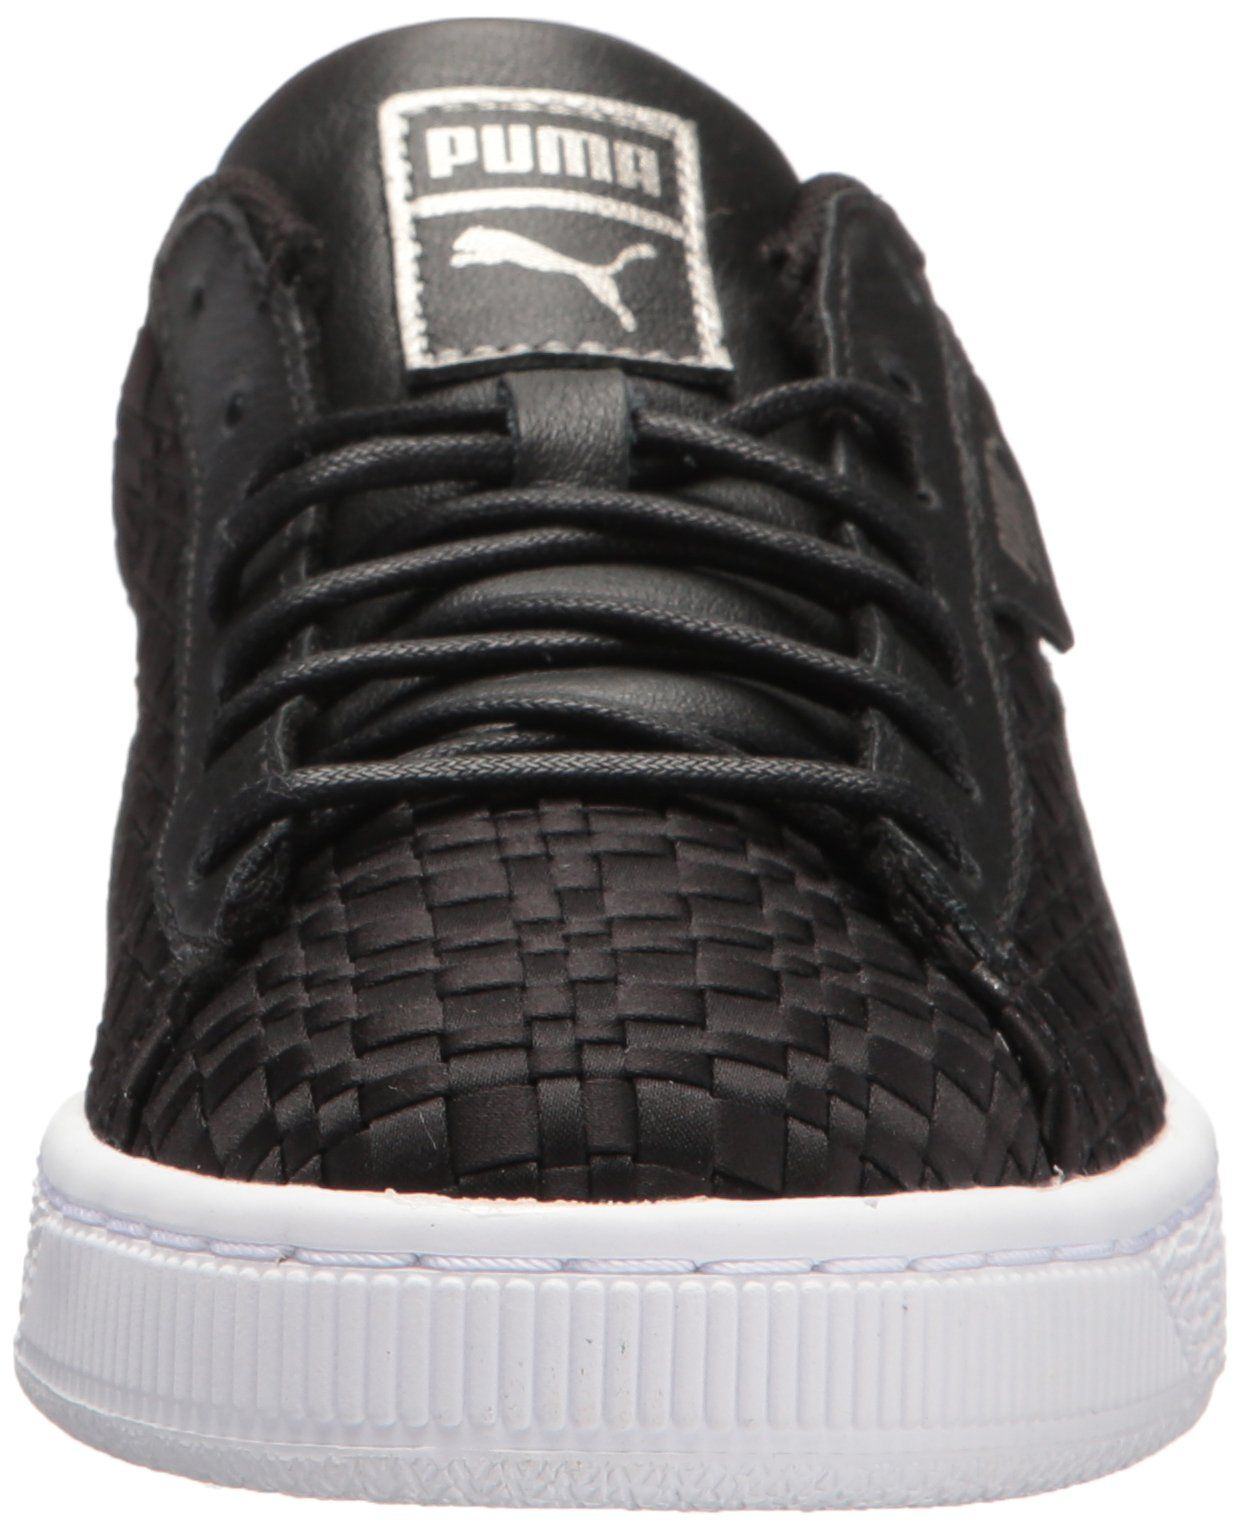 05c81ed49426 PUMA Womens Basket Satin En Pointe Wn Sneaker Black White 11 M US   More  info could be found at the image url. (This is an affiliate link)   ...